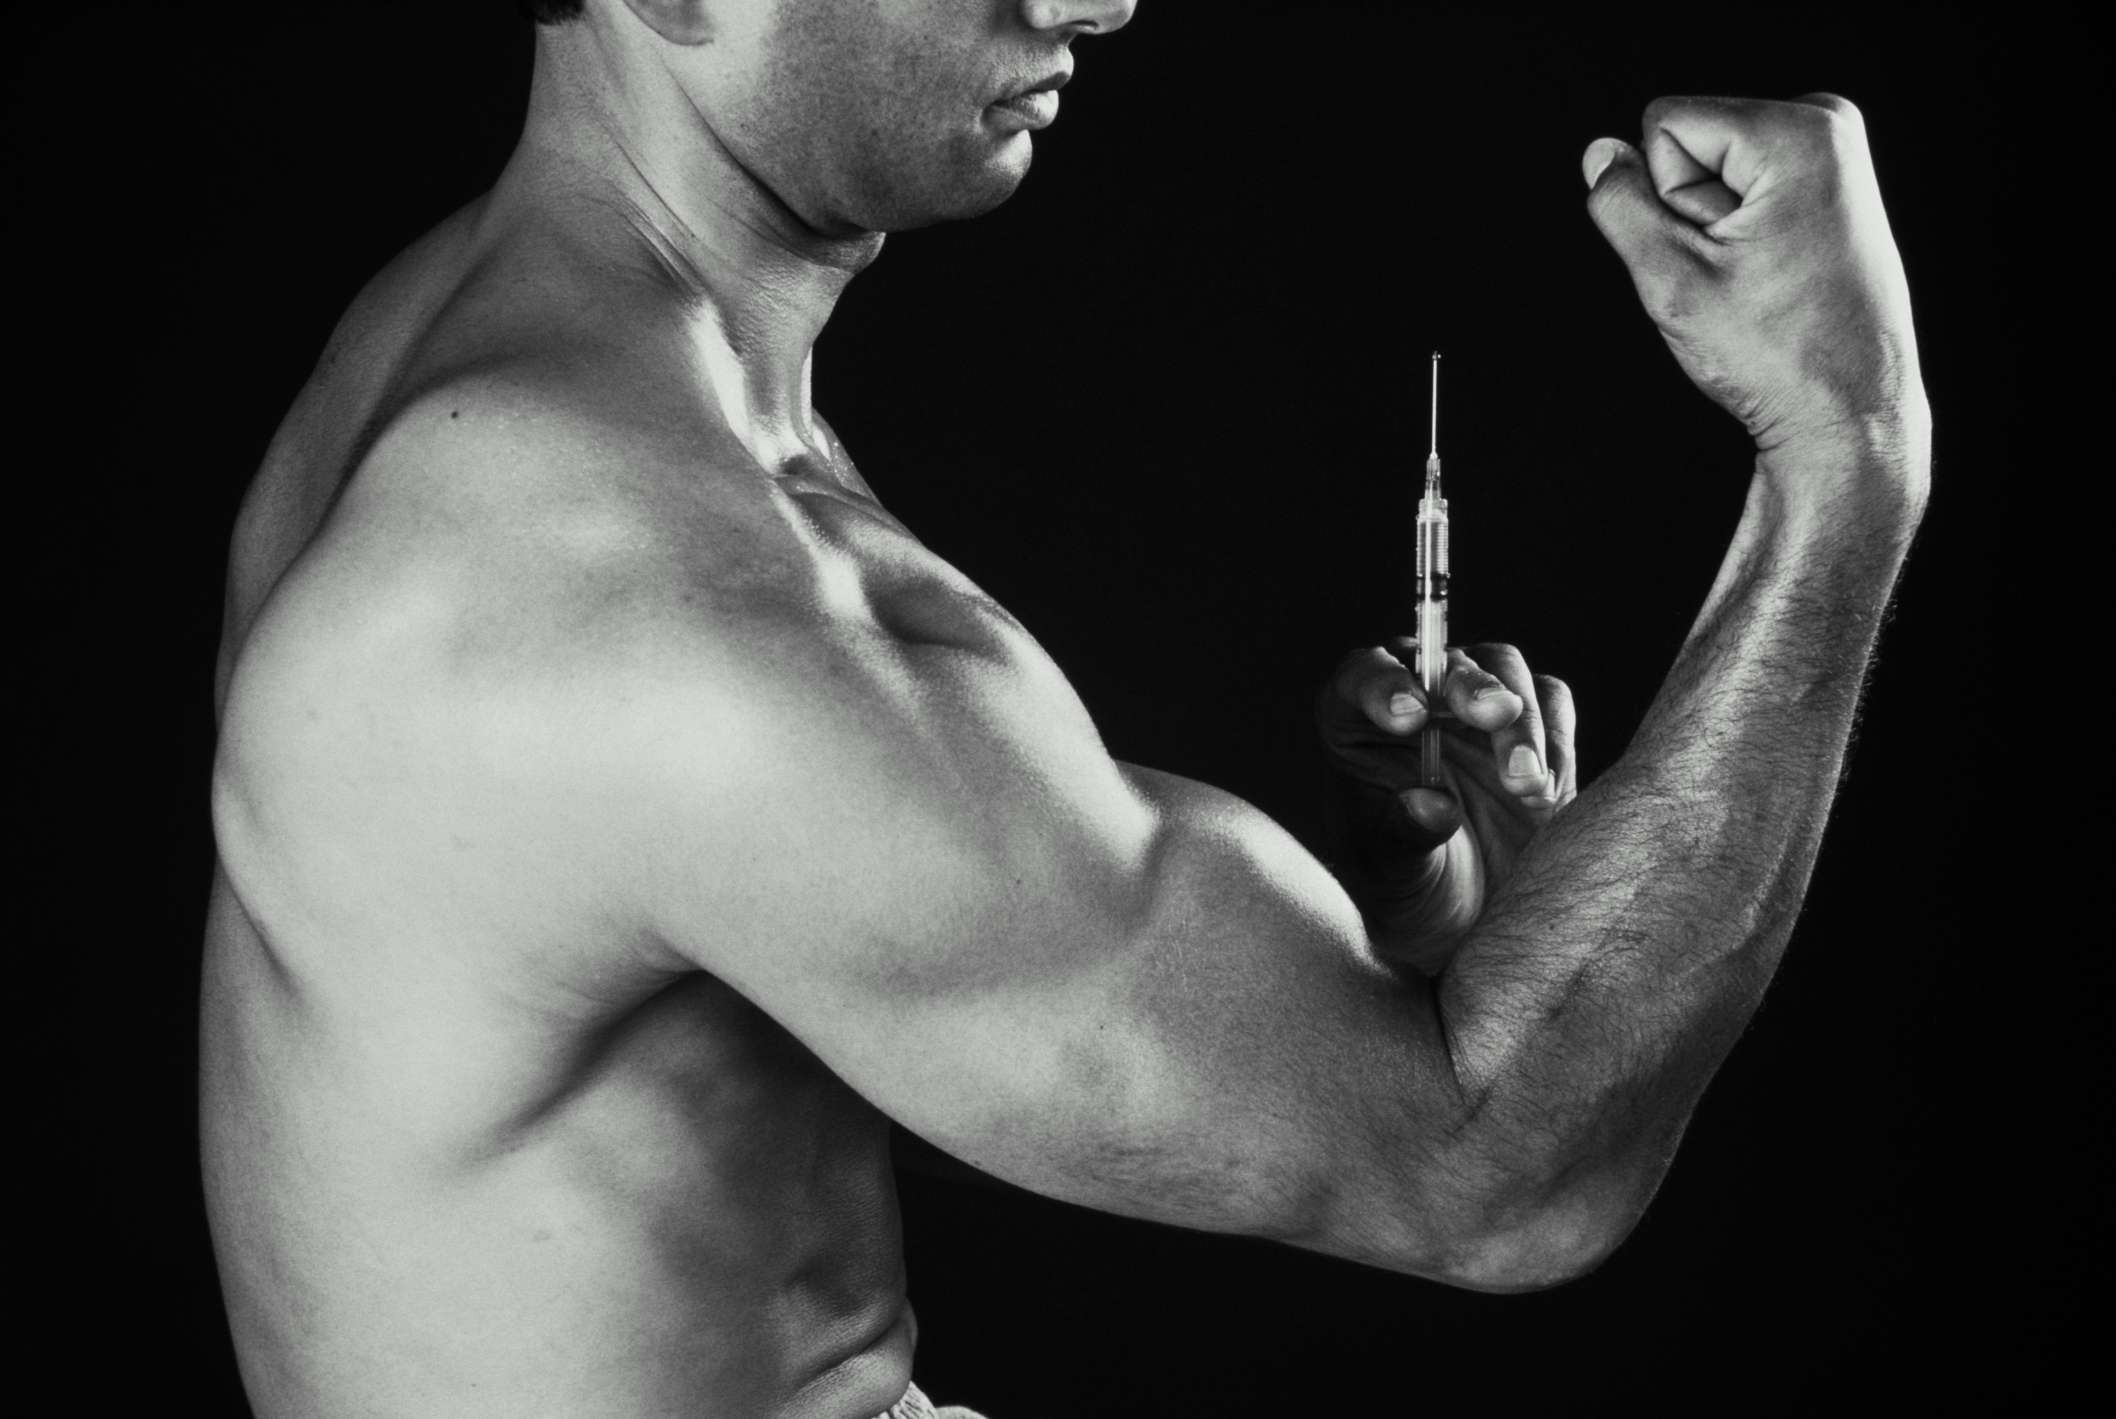 Anabolic Steroids Abuse Frequently Asked Questions